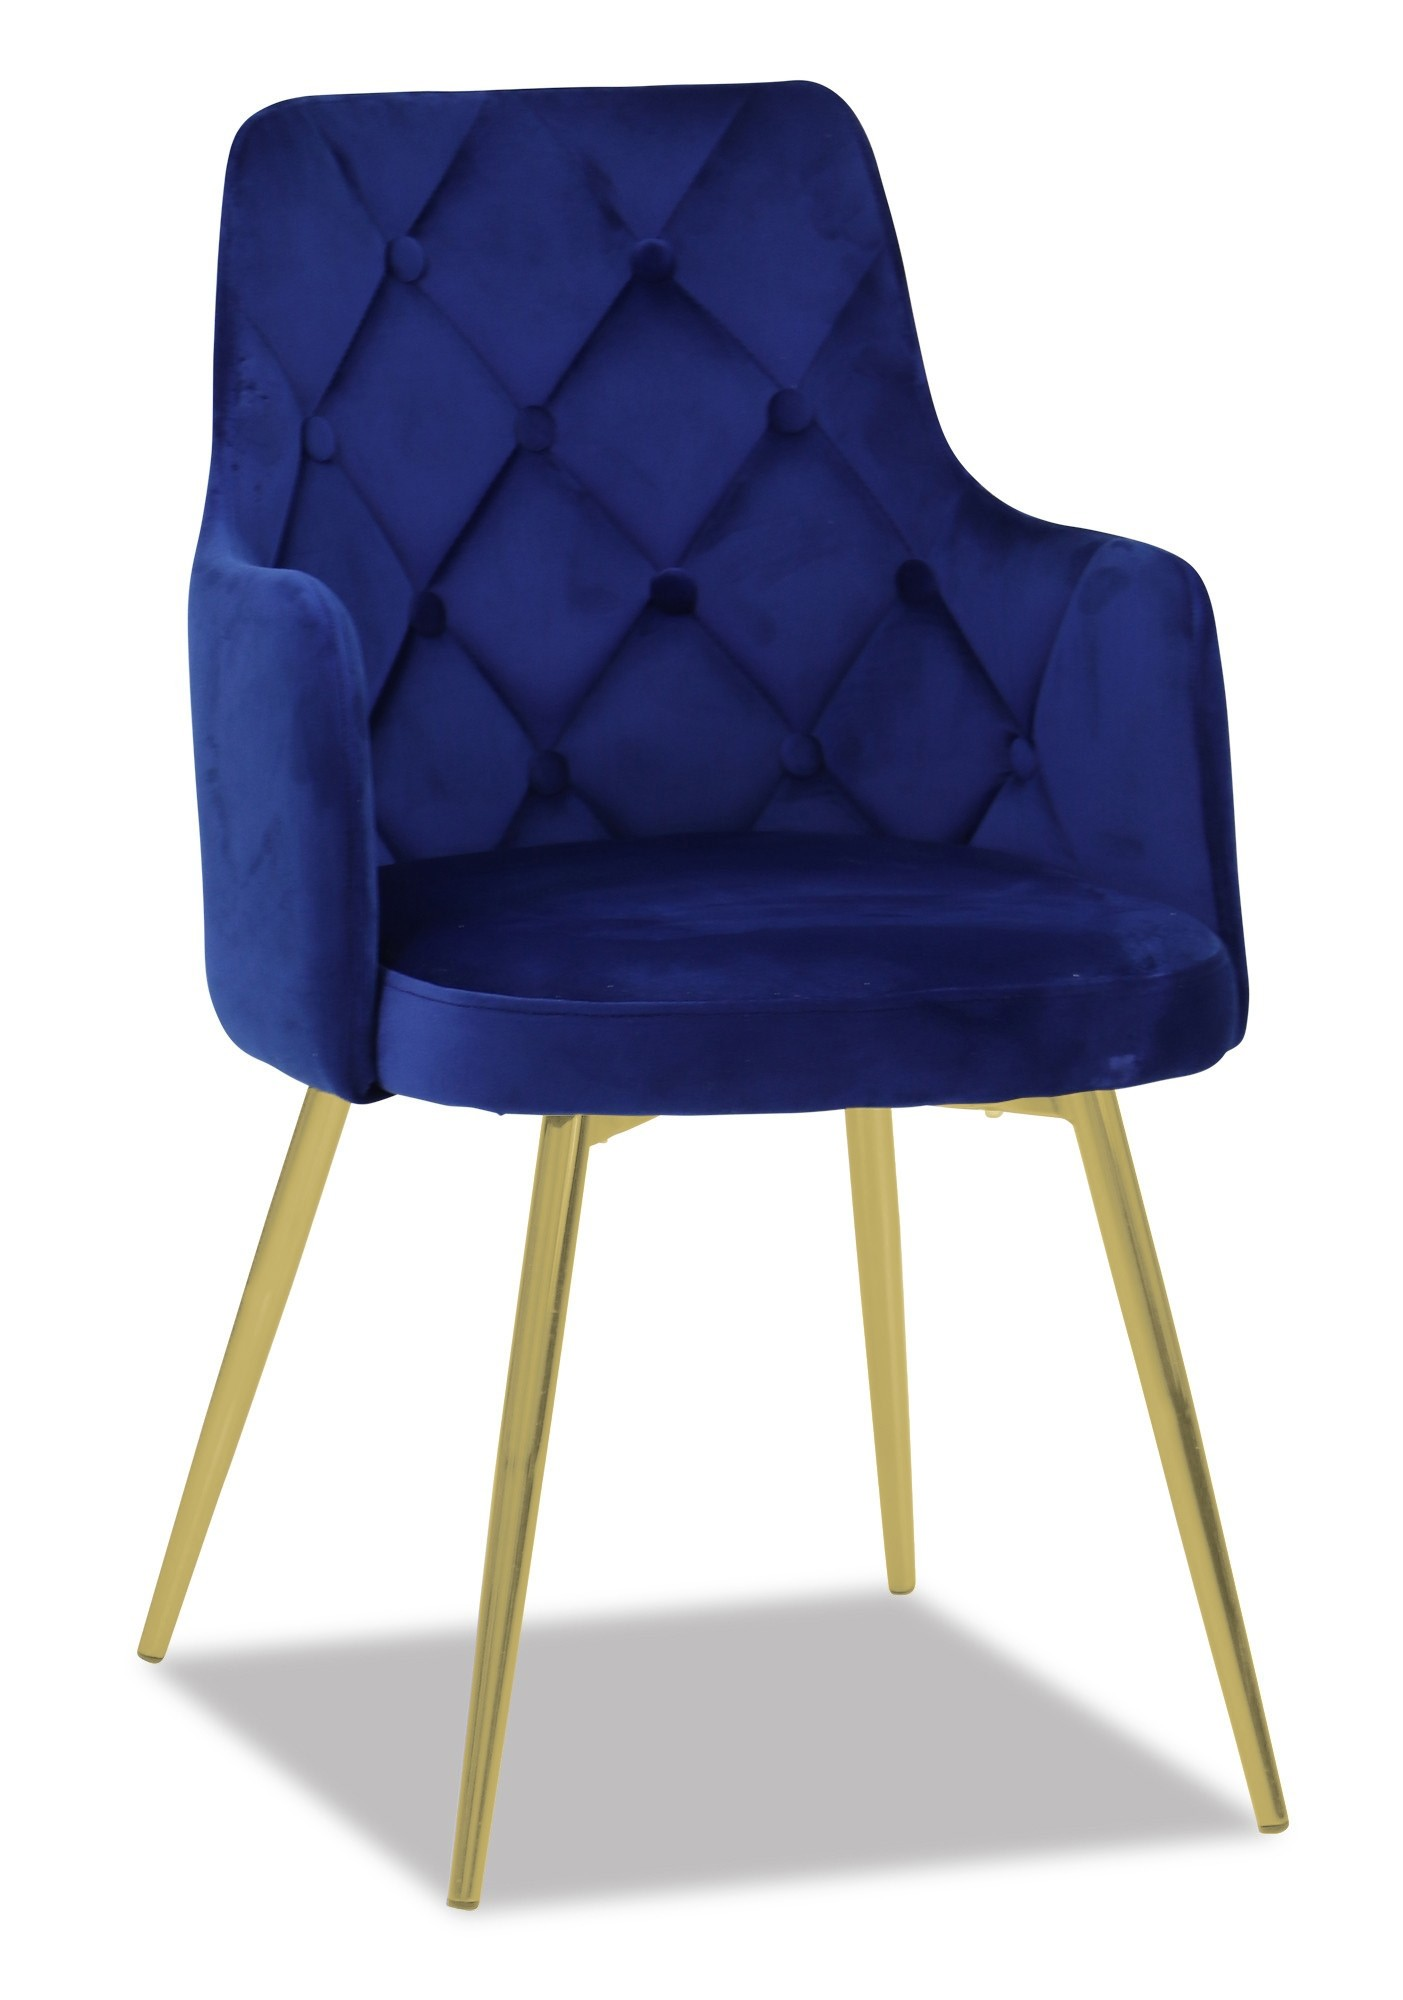 Royal Blue Chair Decor Pink Living Room: Laurie Chair With Gold Legs (Royal Blue)